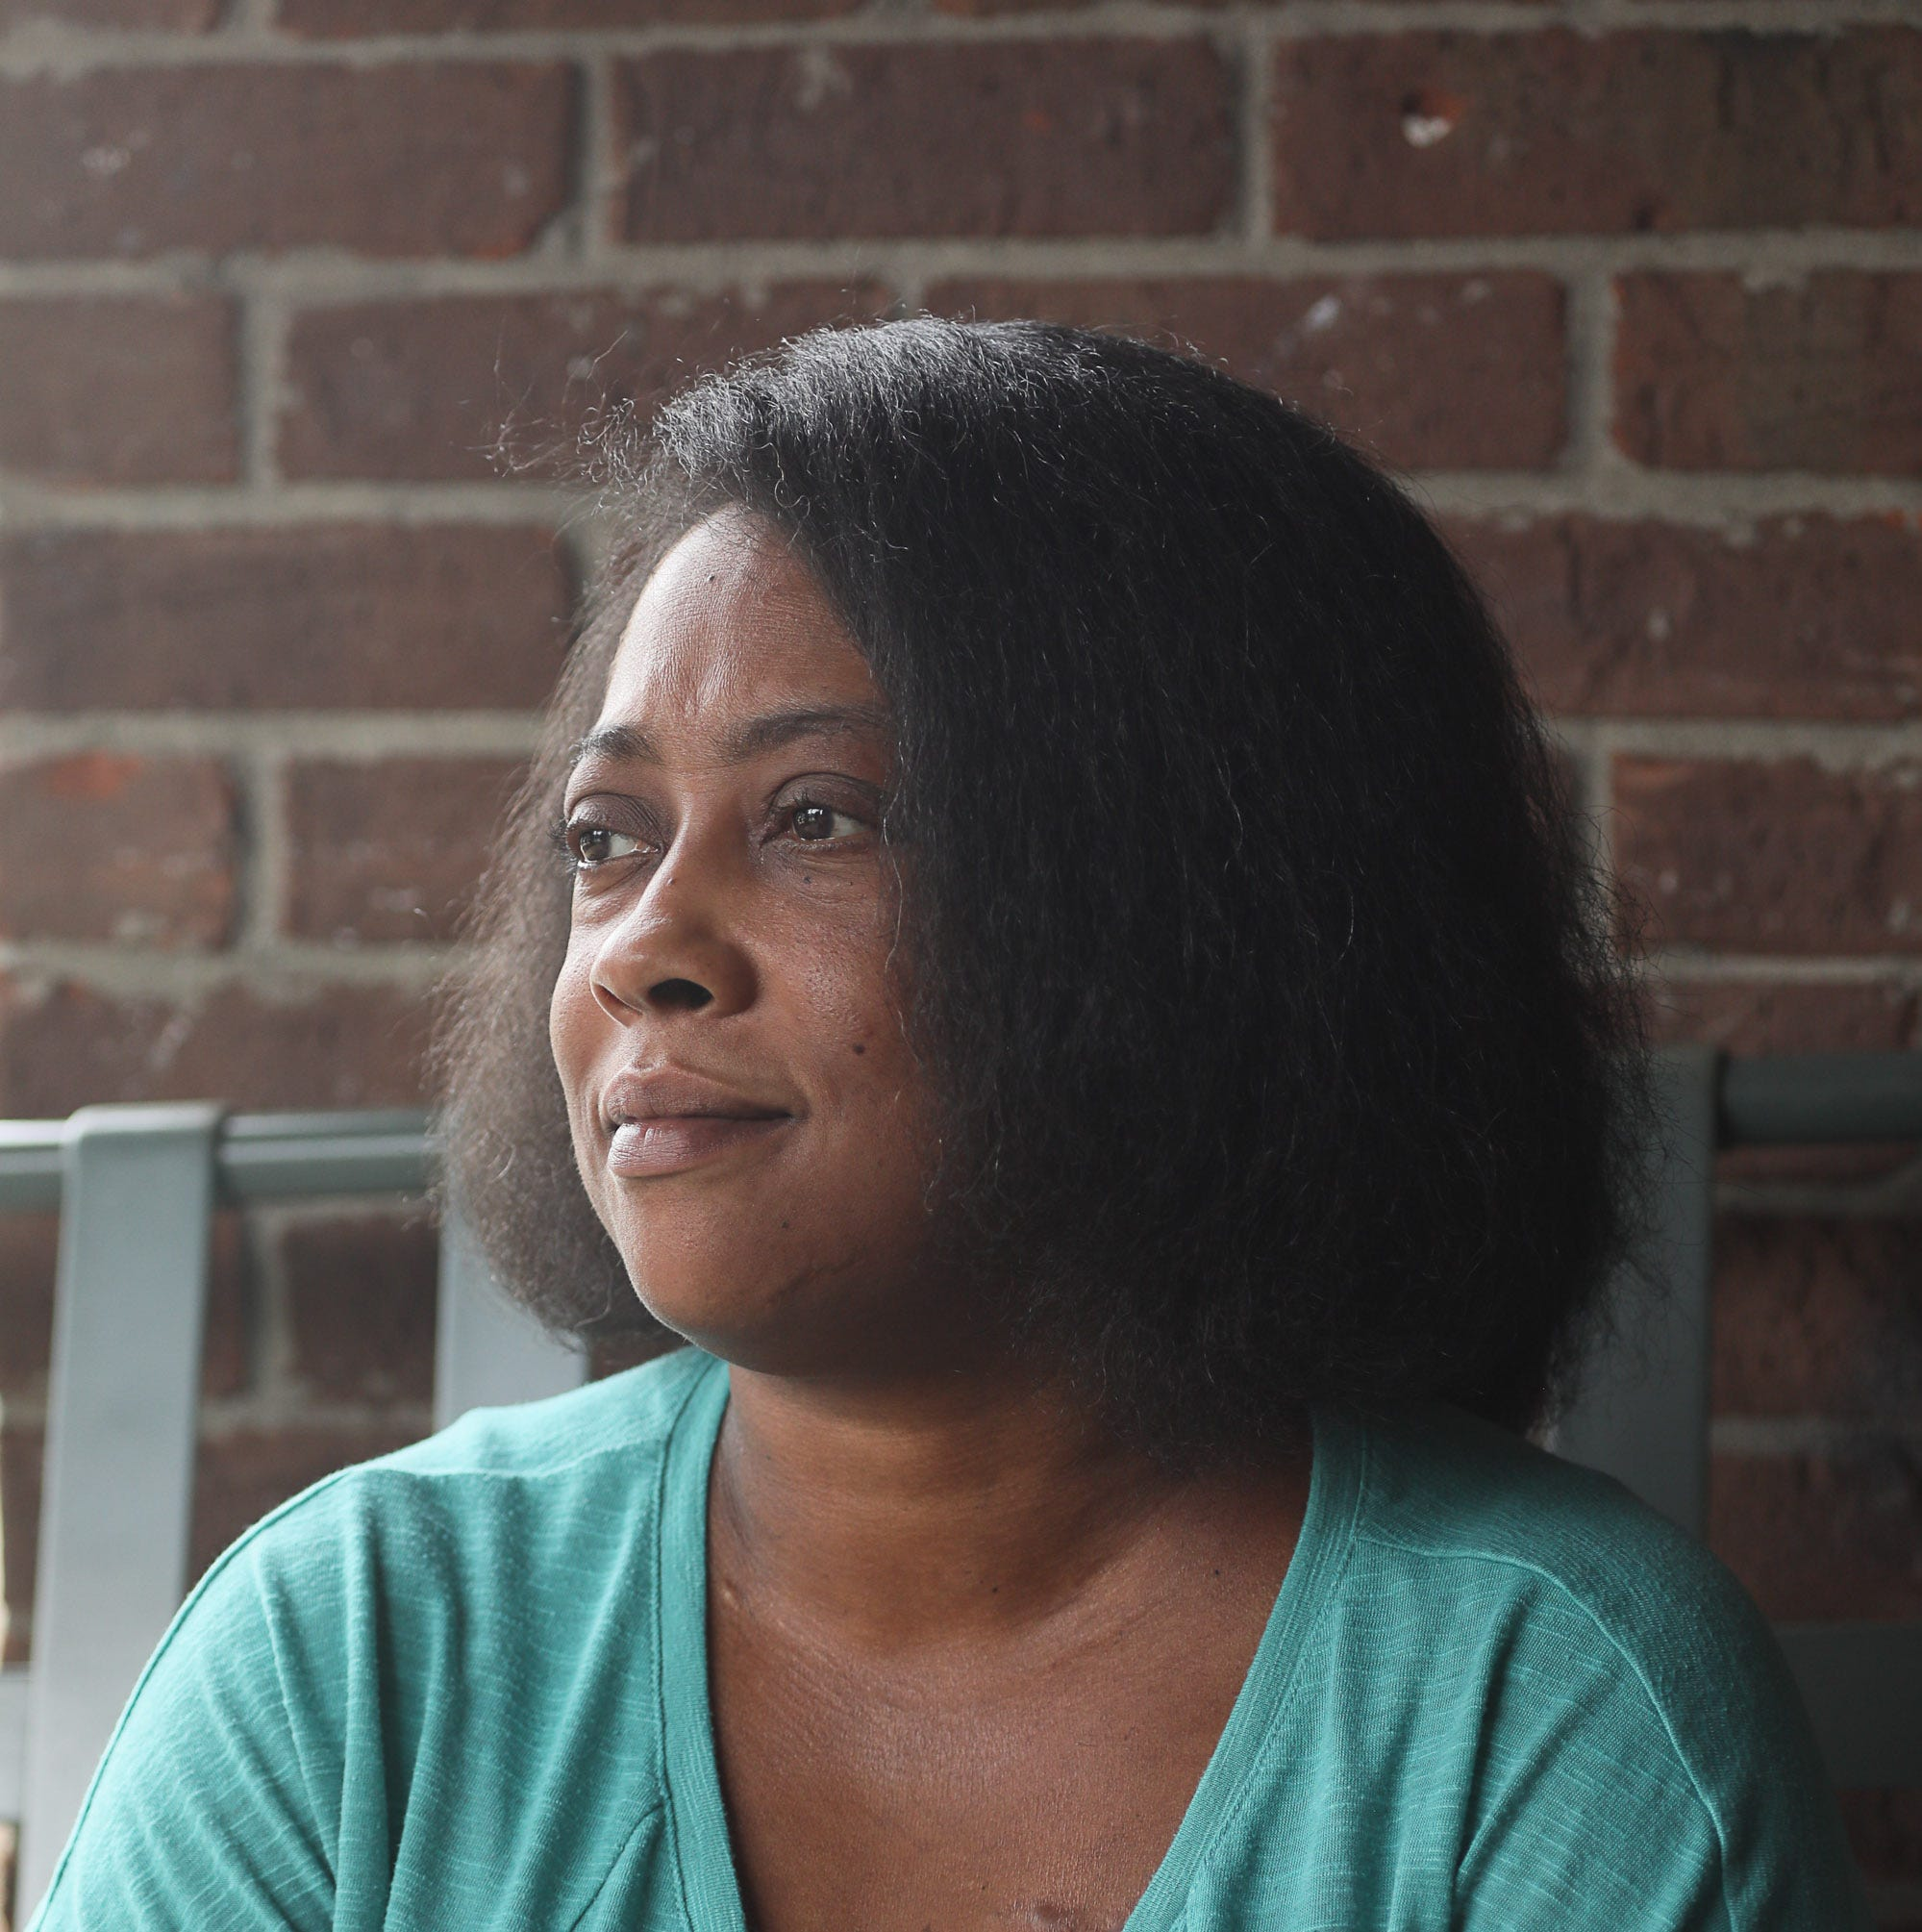 LeNata Townsend at her home in Louisville, KY. May 22, 2019